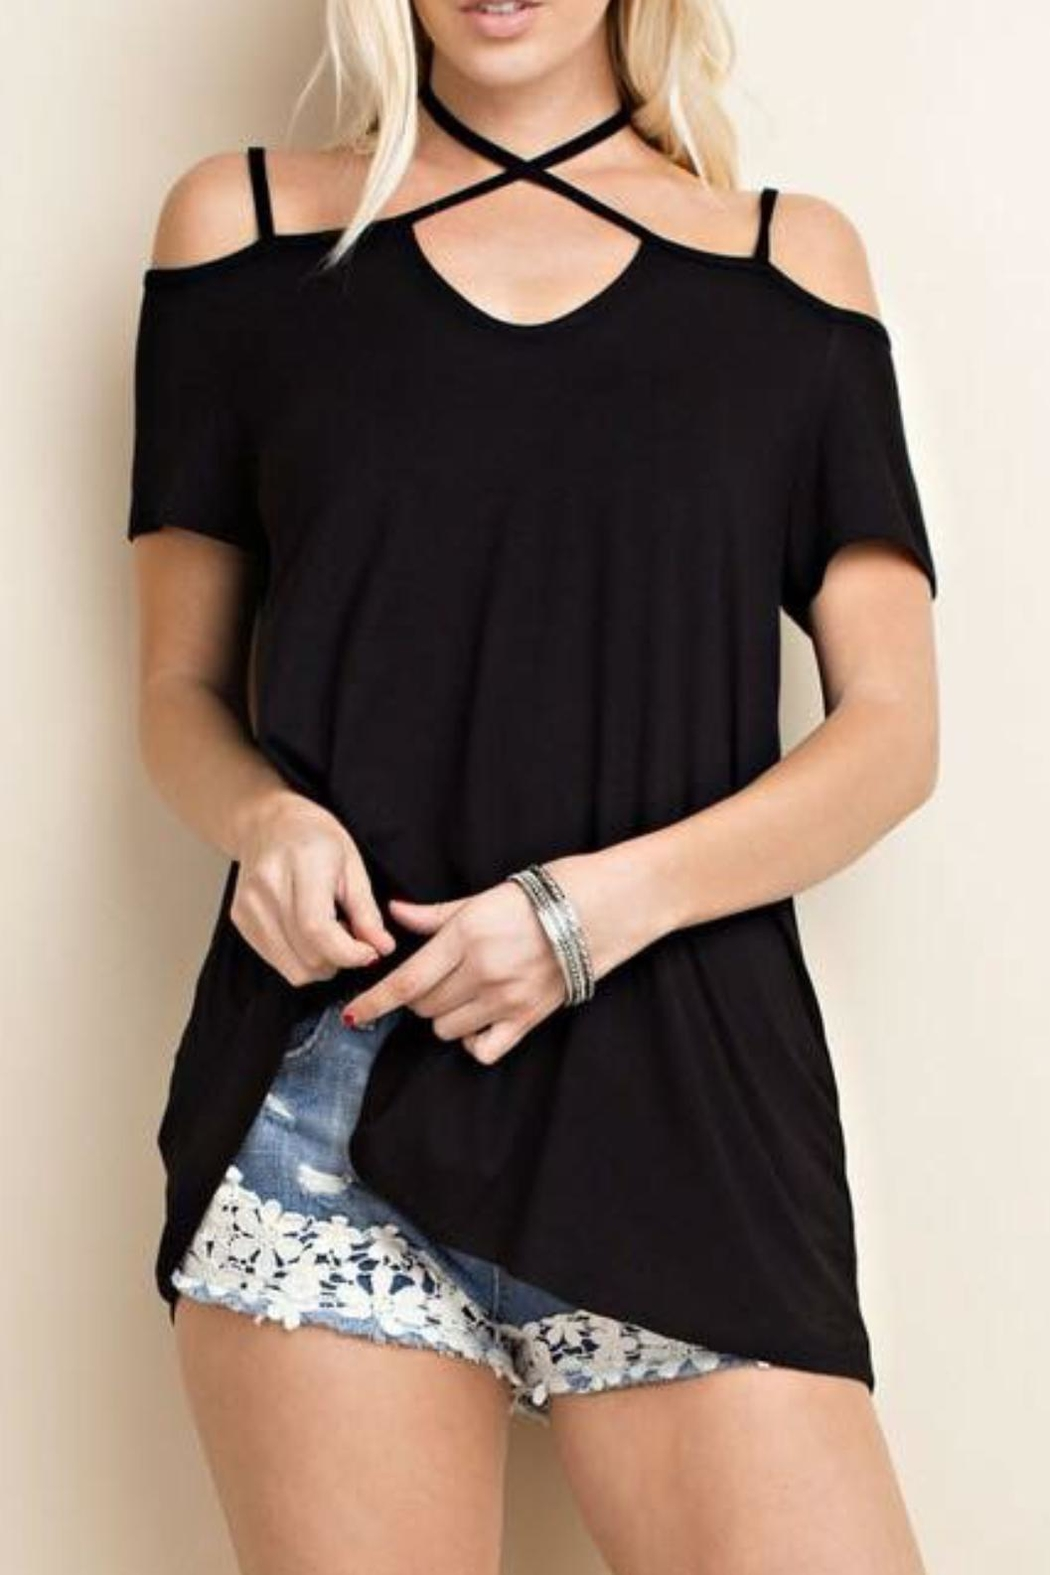 Bing Com 143 305 70: 143 Story Keyhole Black Top From New York City By Uniquely